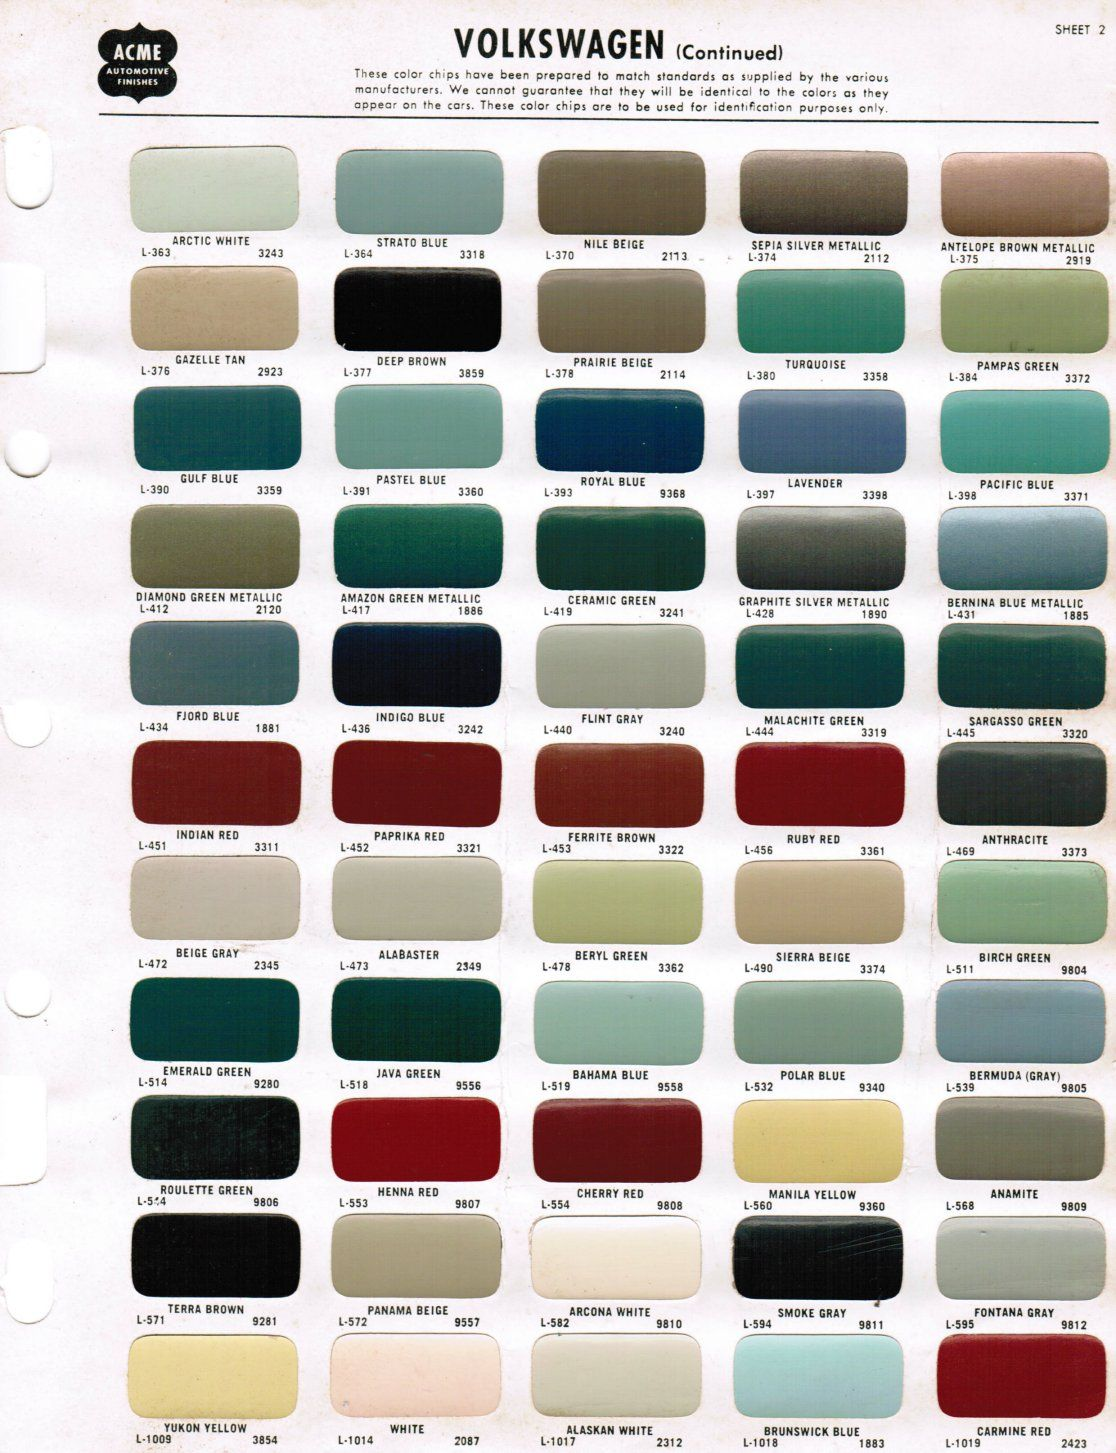 1968 Acme Vw Paint Color Chips In 2020 Volkswagen Beetle Volkswagen Beetle Vintage Volkswagen